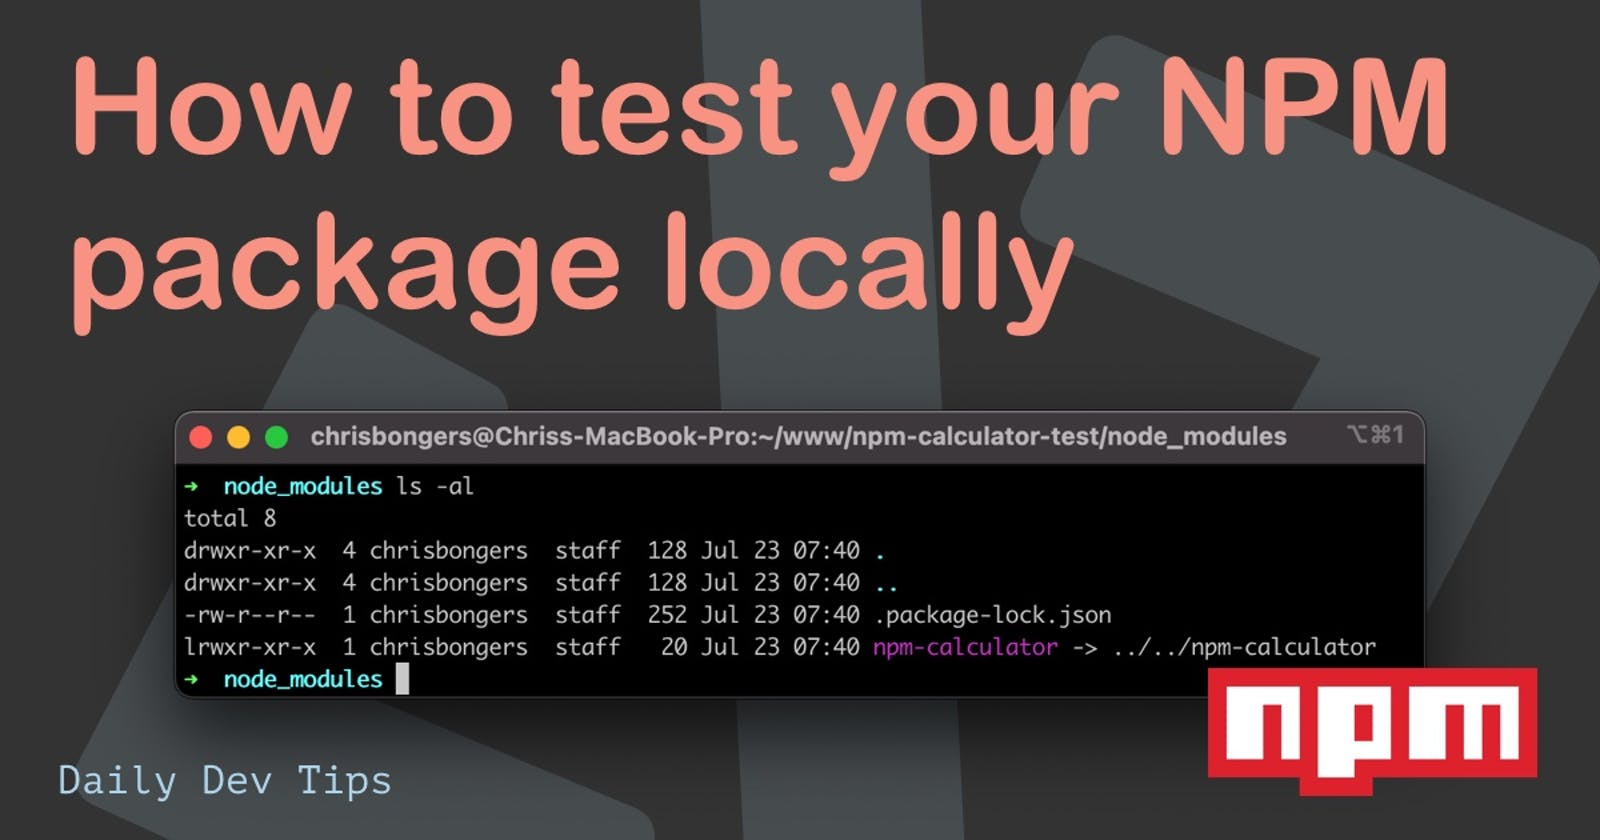 How to test your NPM package locally